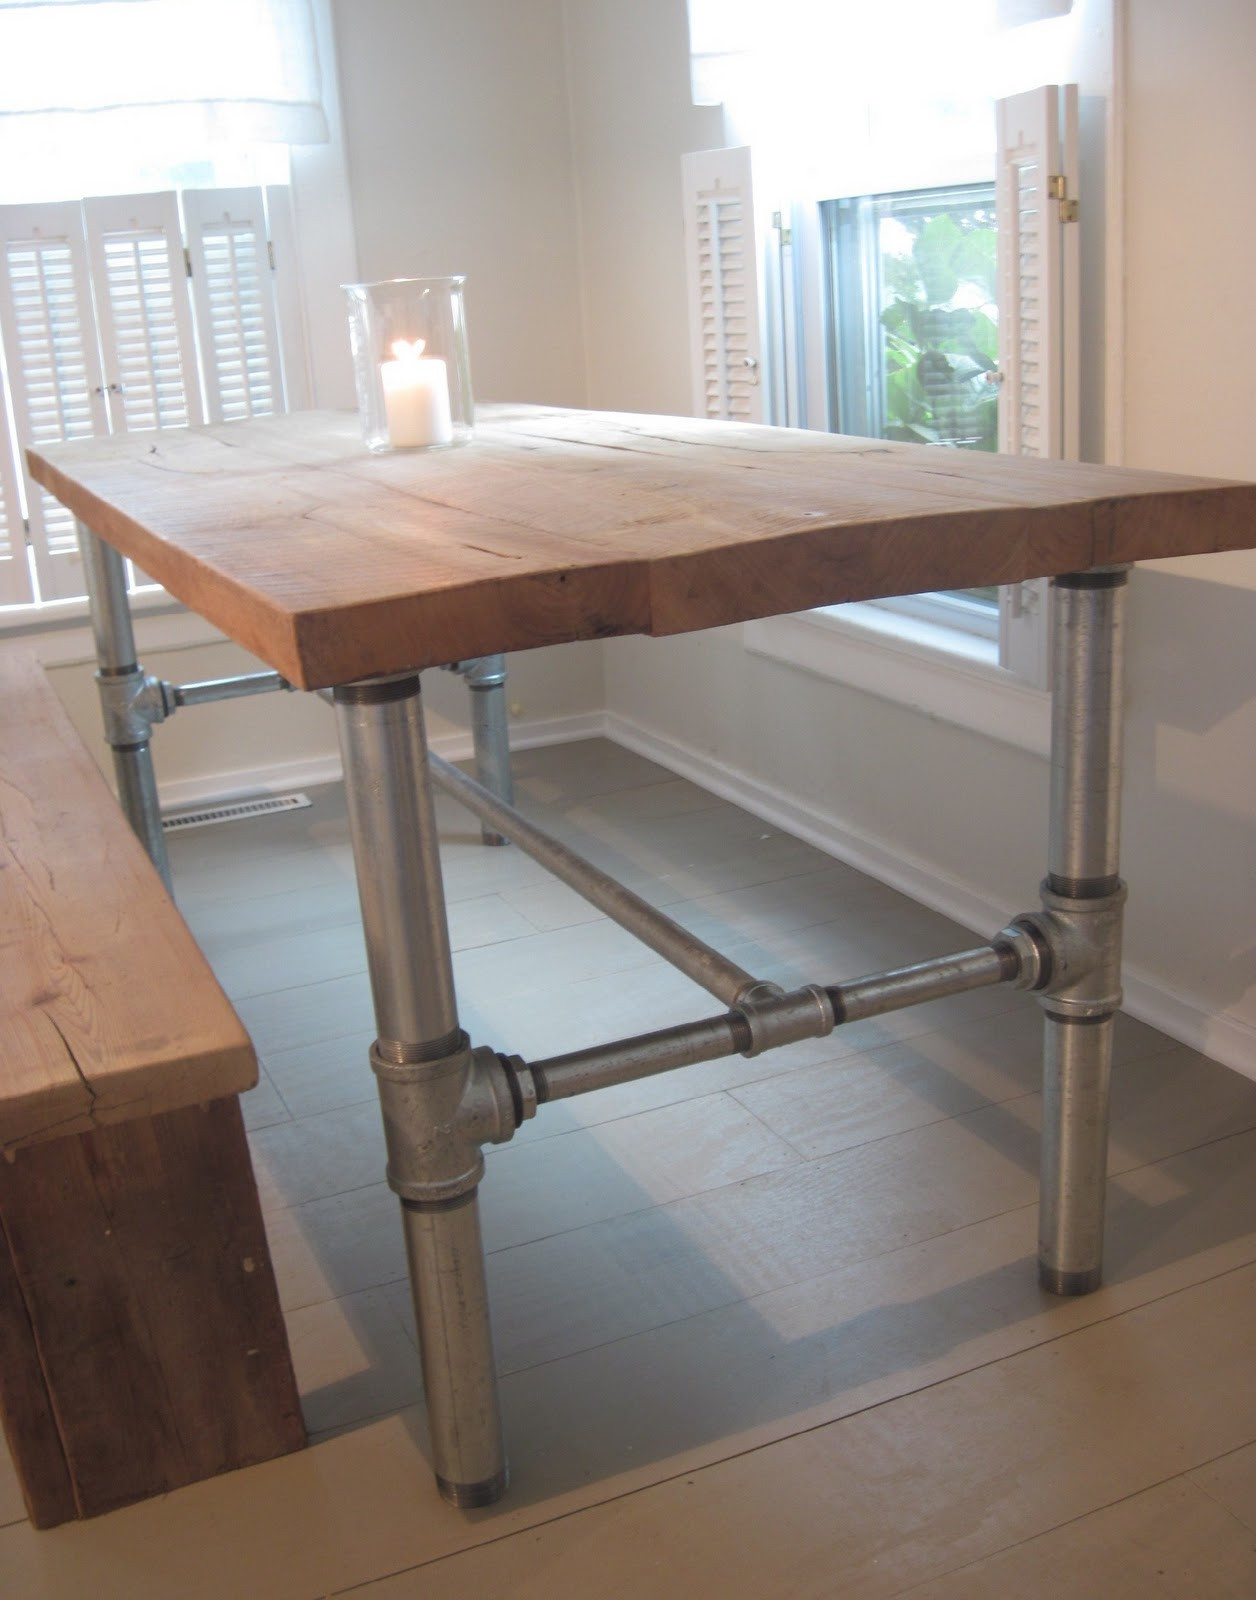 Best ideas about DIY Industrial Table . Save or Pin BACK TO HOME DESIGN industrial table base tutorial Now.